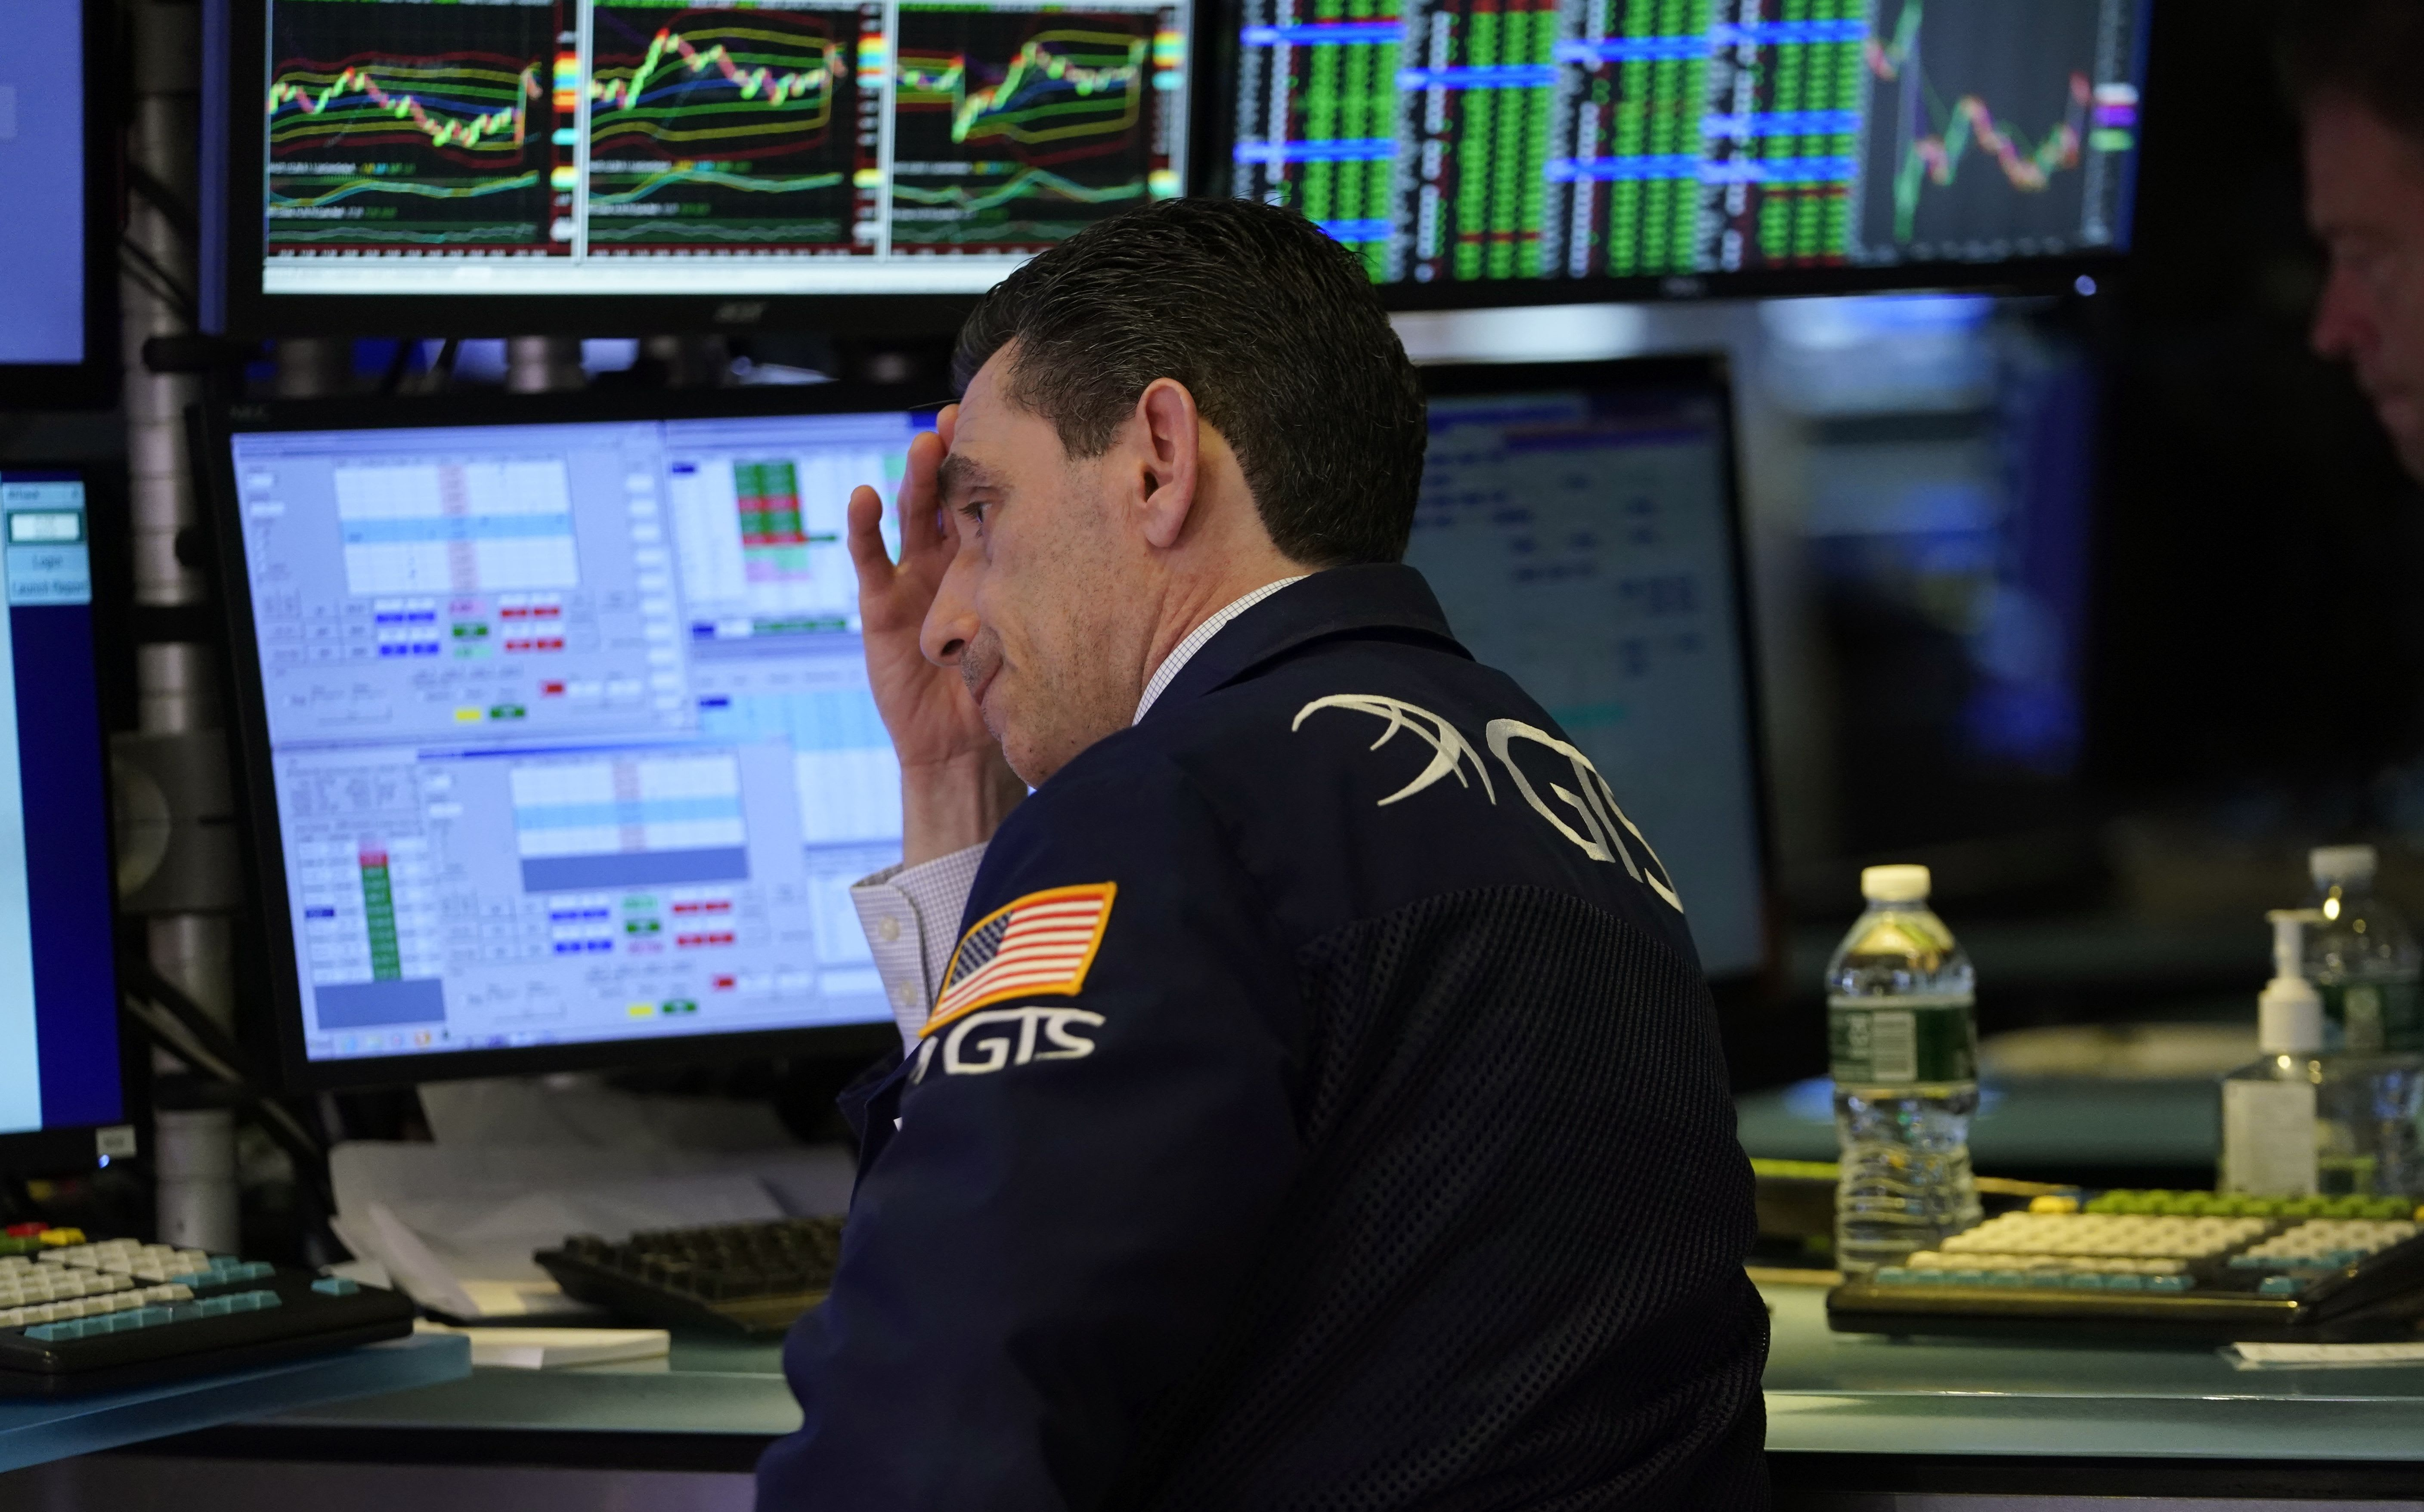 Traders grapple to find the bottom as Dow enters bear market territory with S&P 500 not far behind